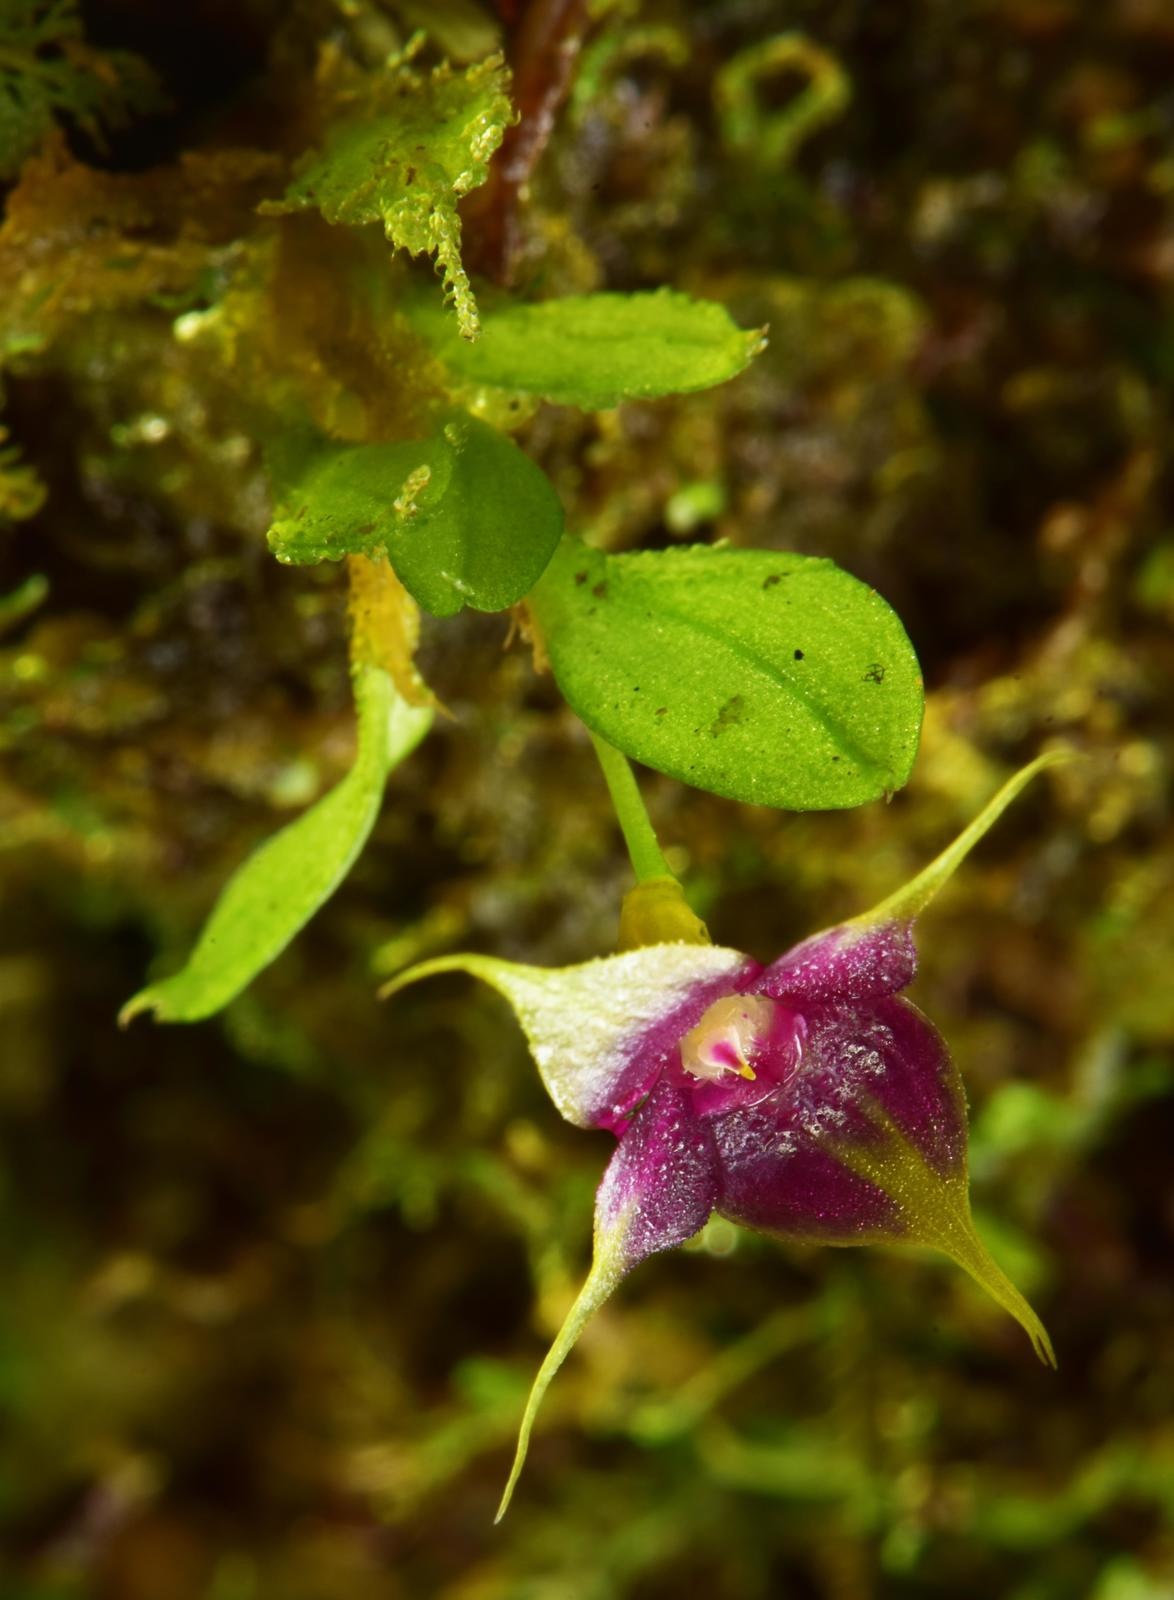 A new species of cup orchid (Brachionidium sp. nov.) with distinctive purple and yellow flowers. Image © Trond Larsen.